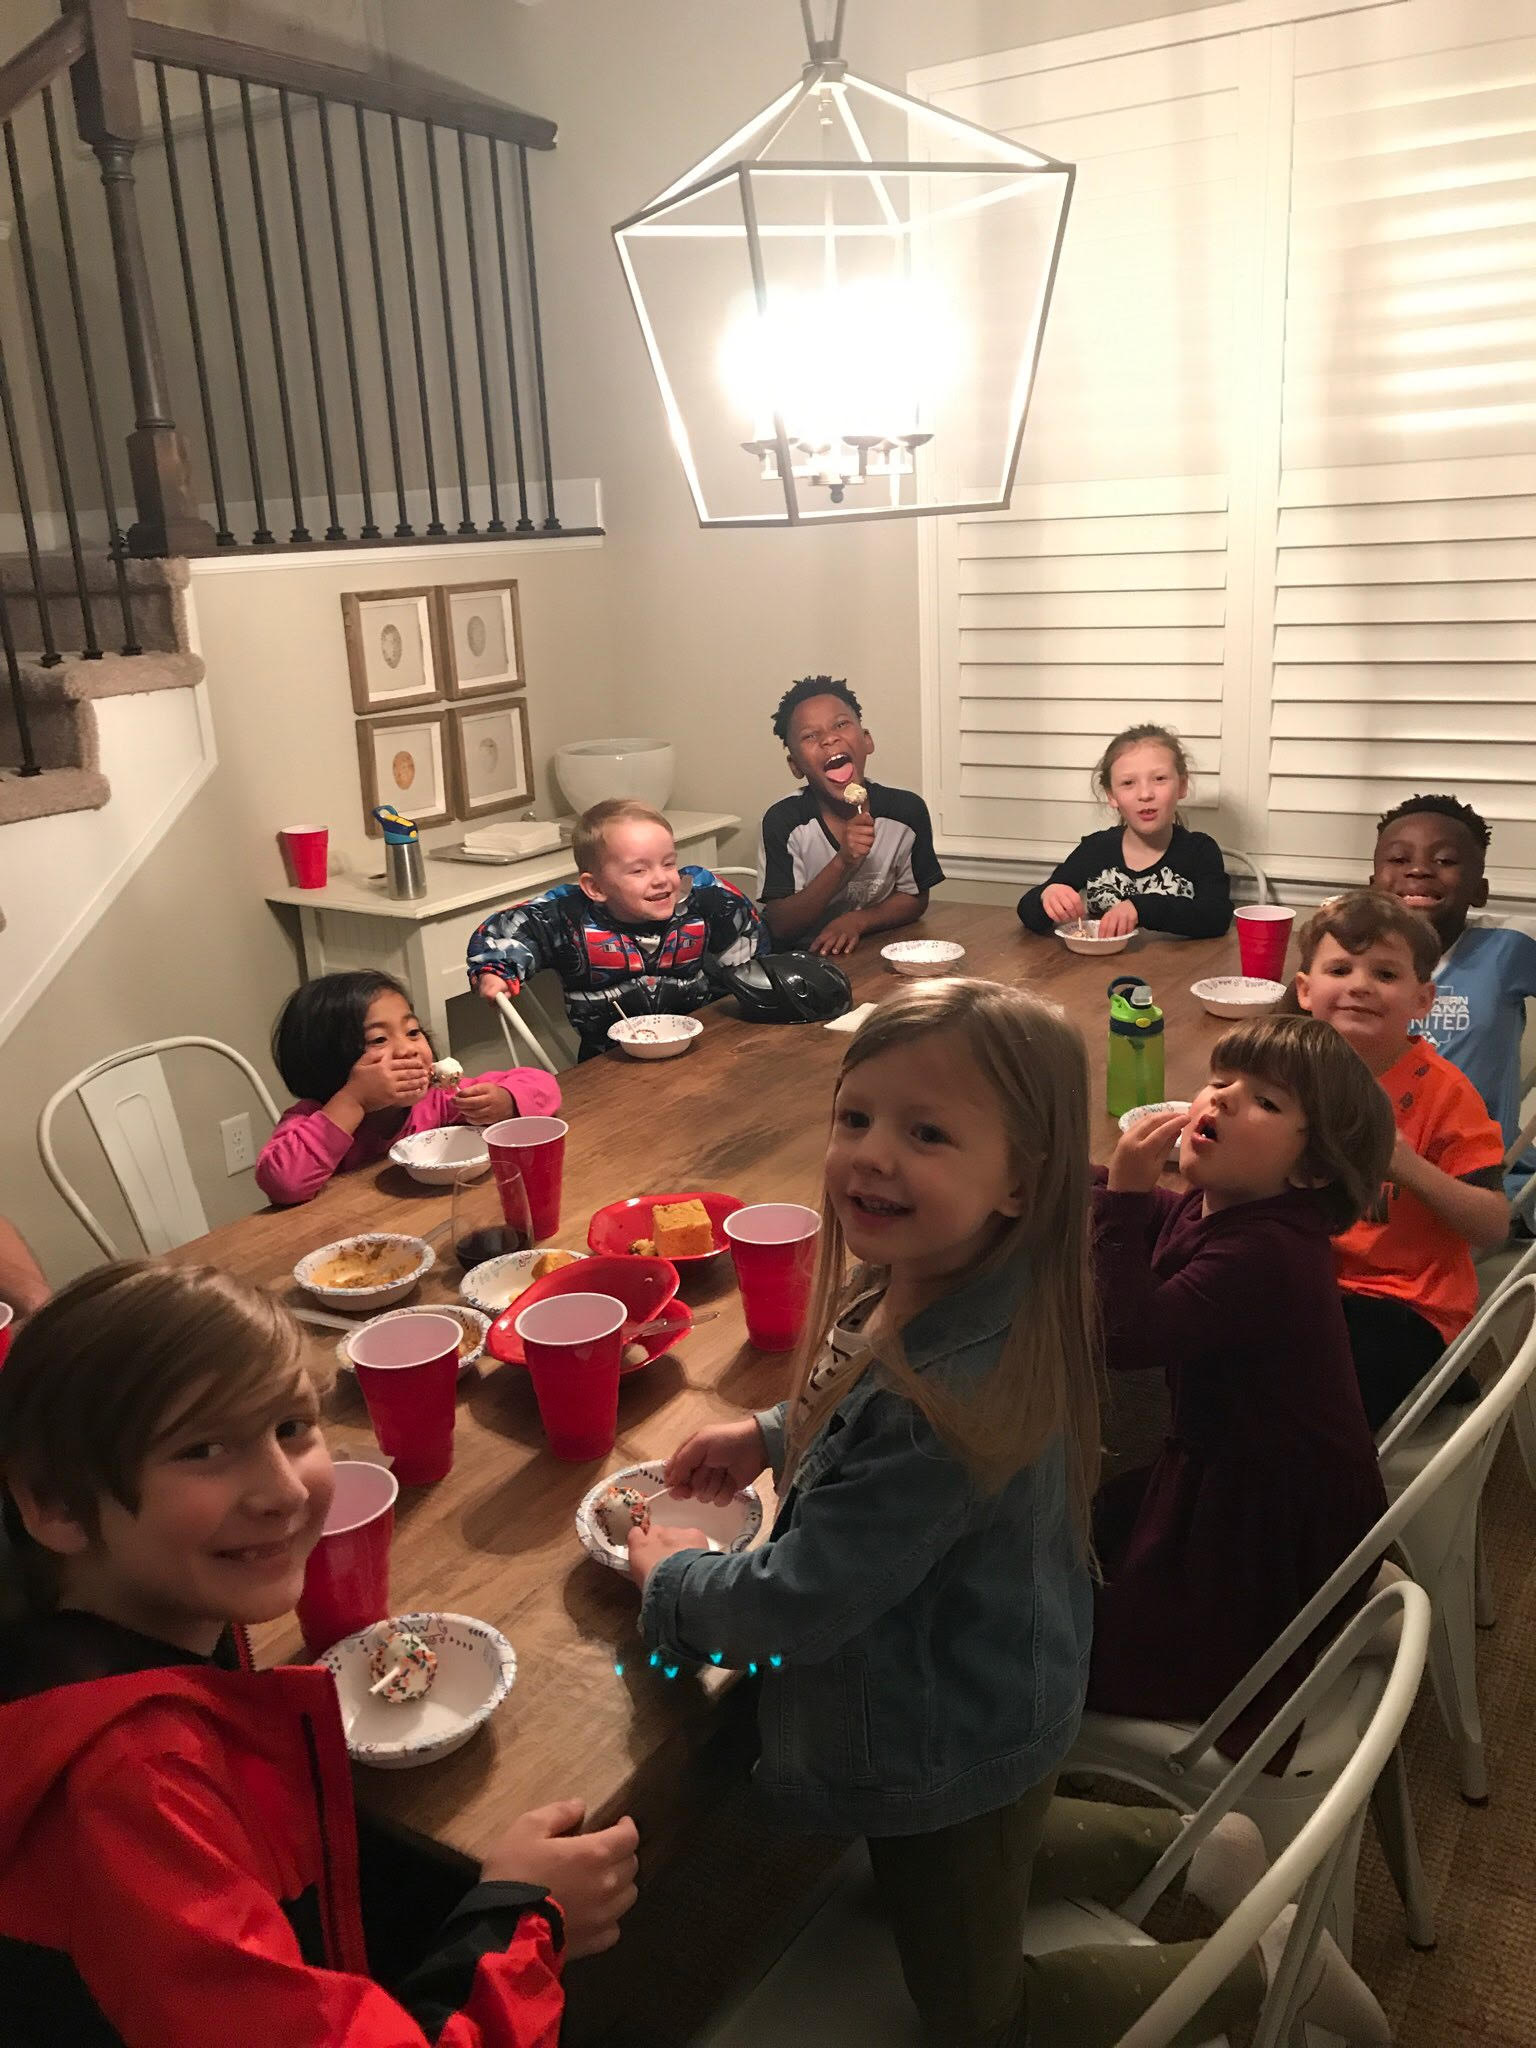 Our kiddos enjoying dessert at our 1st Annual Thanksgiving Feast